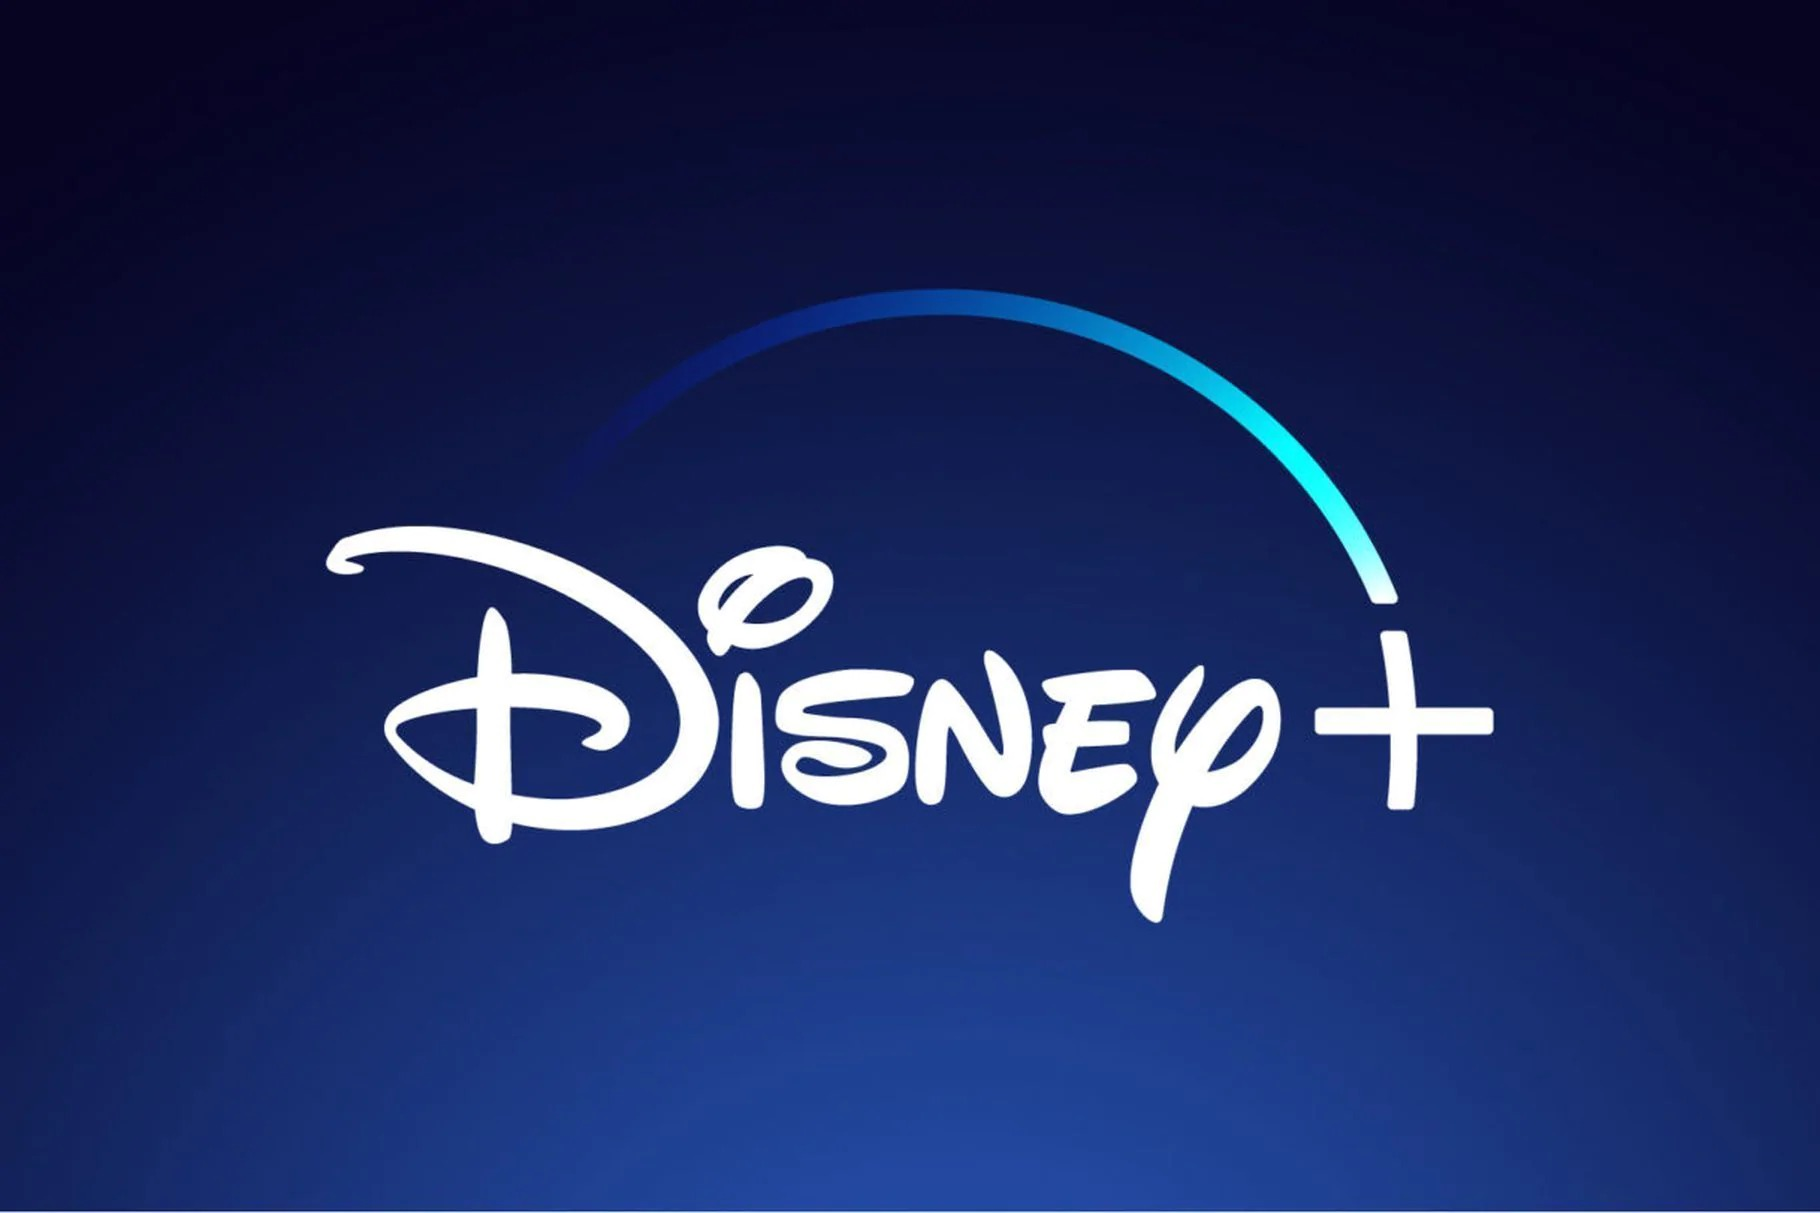 Disney+ Now Available!